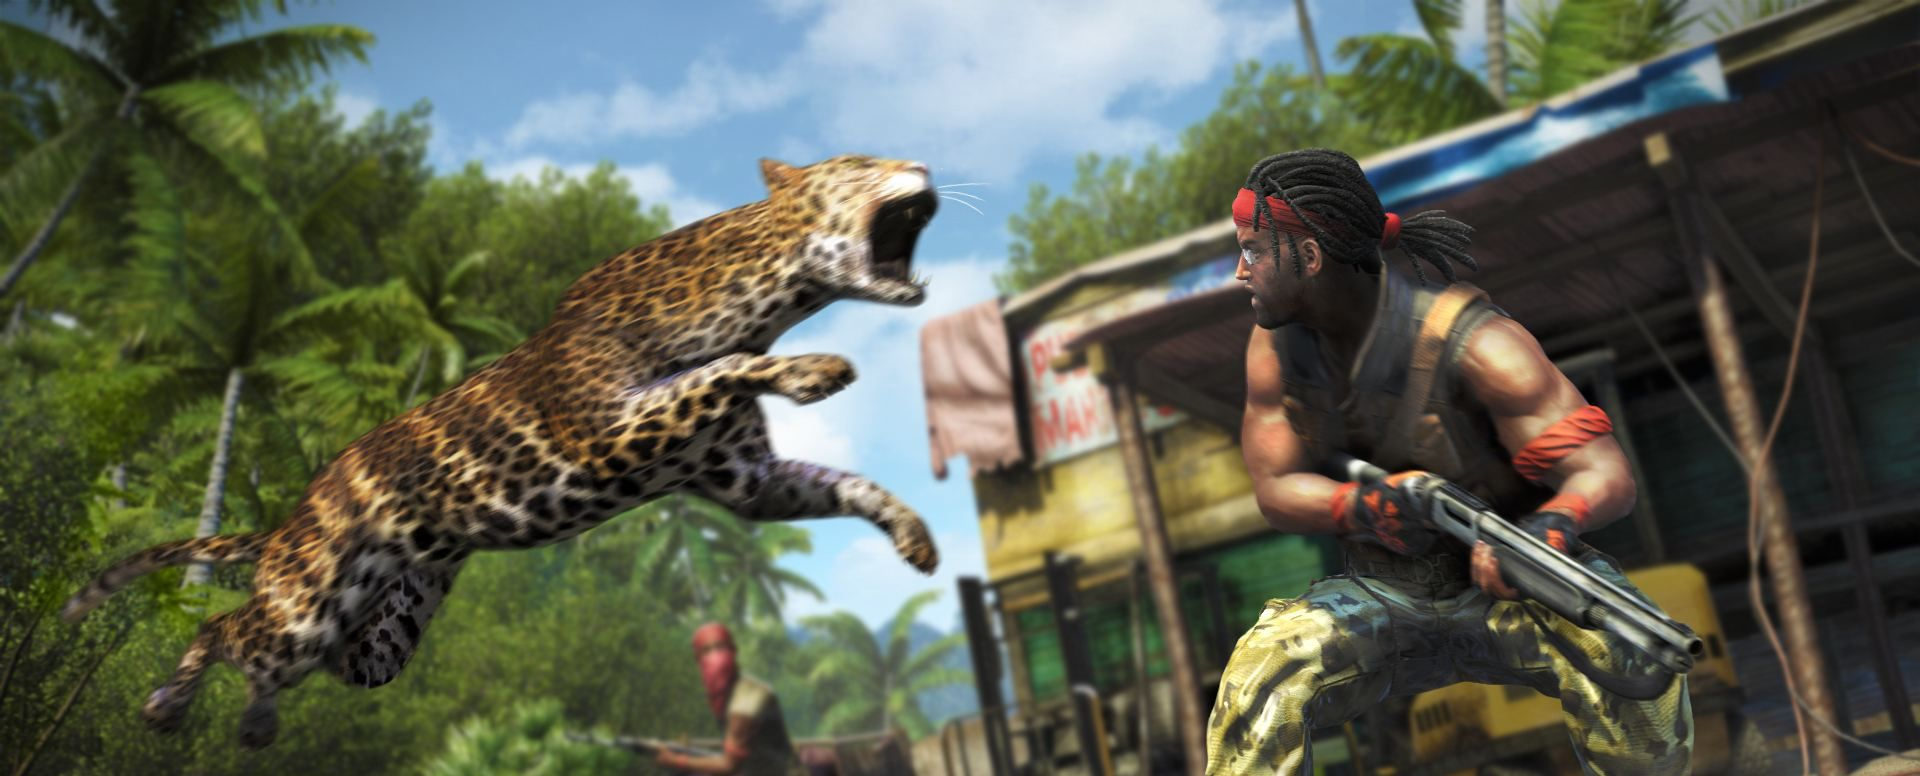 Publicity still for Far Cry 3